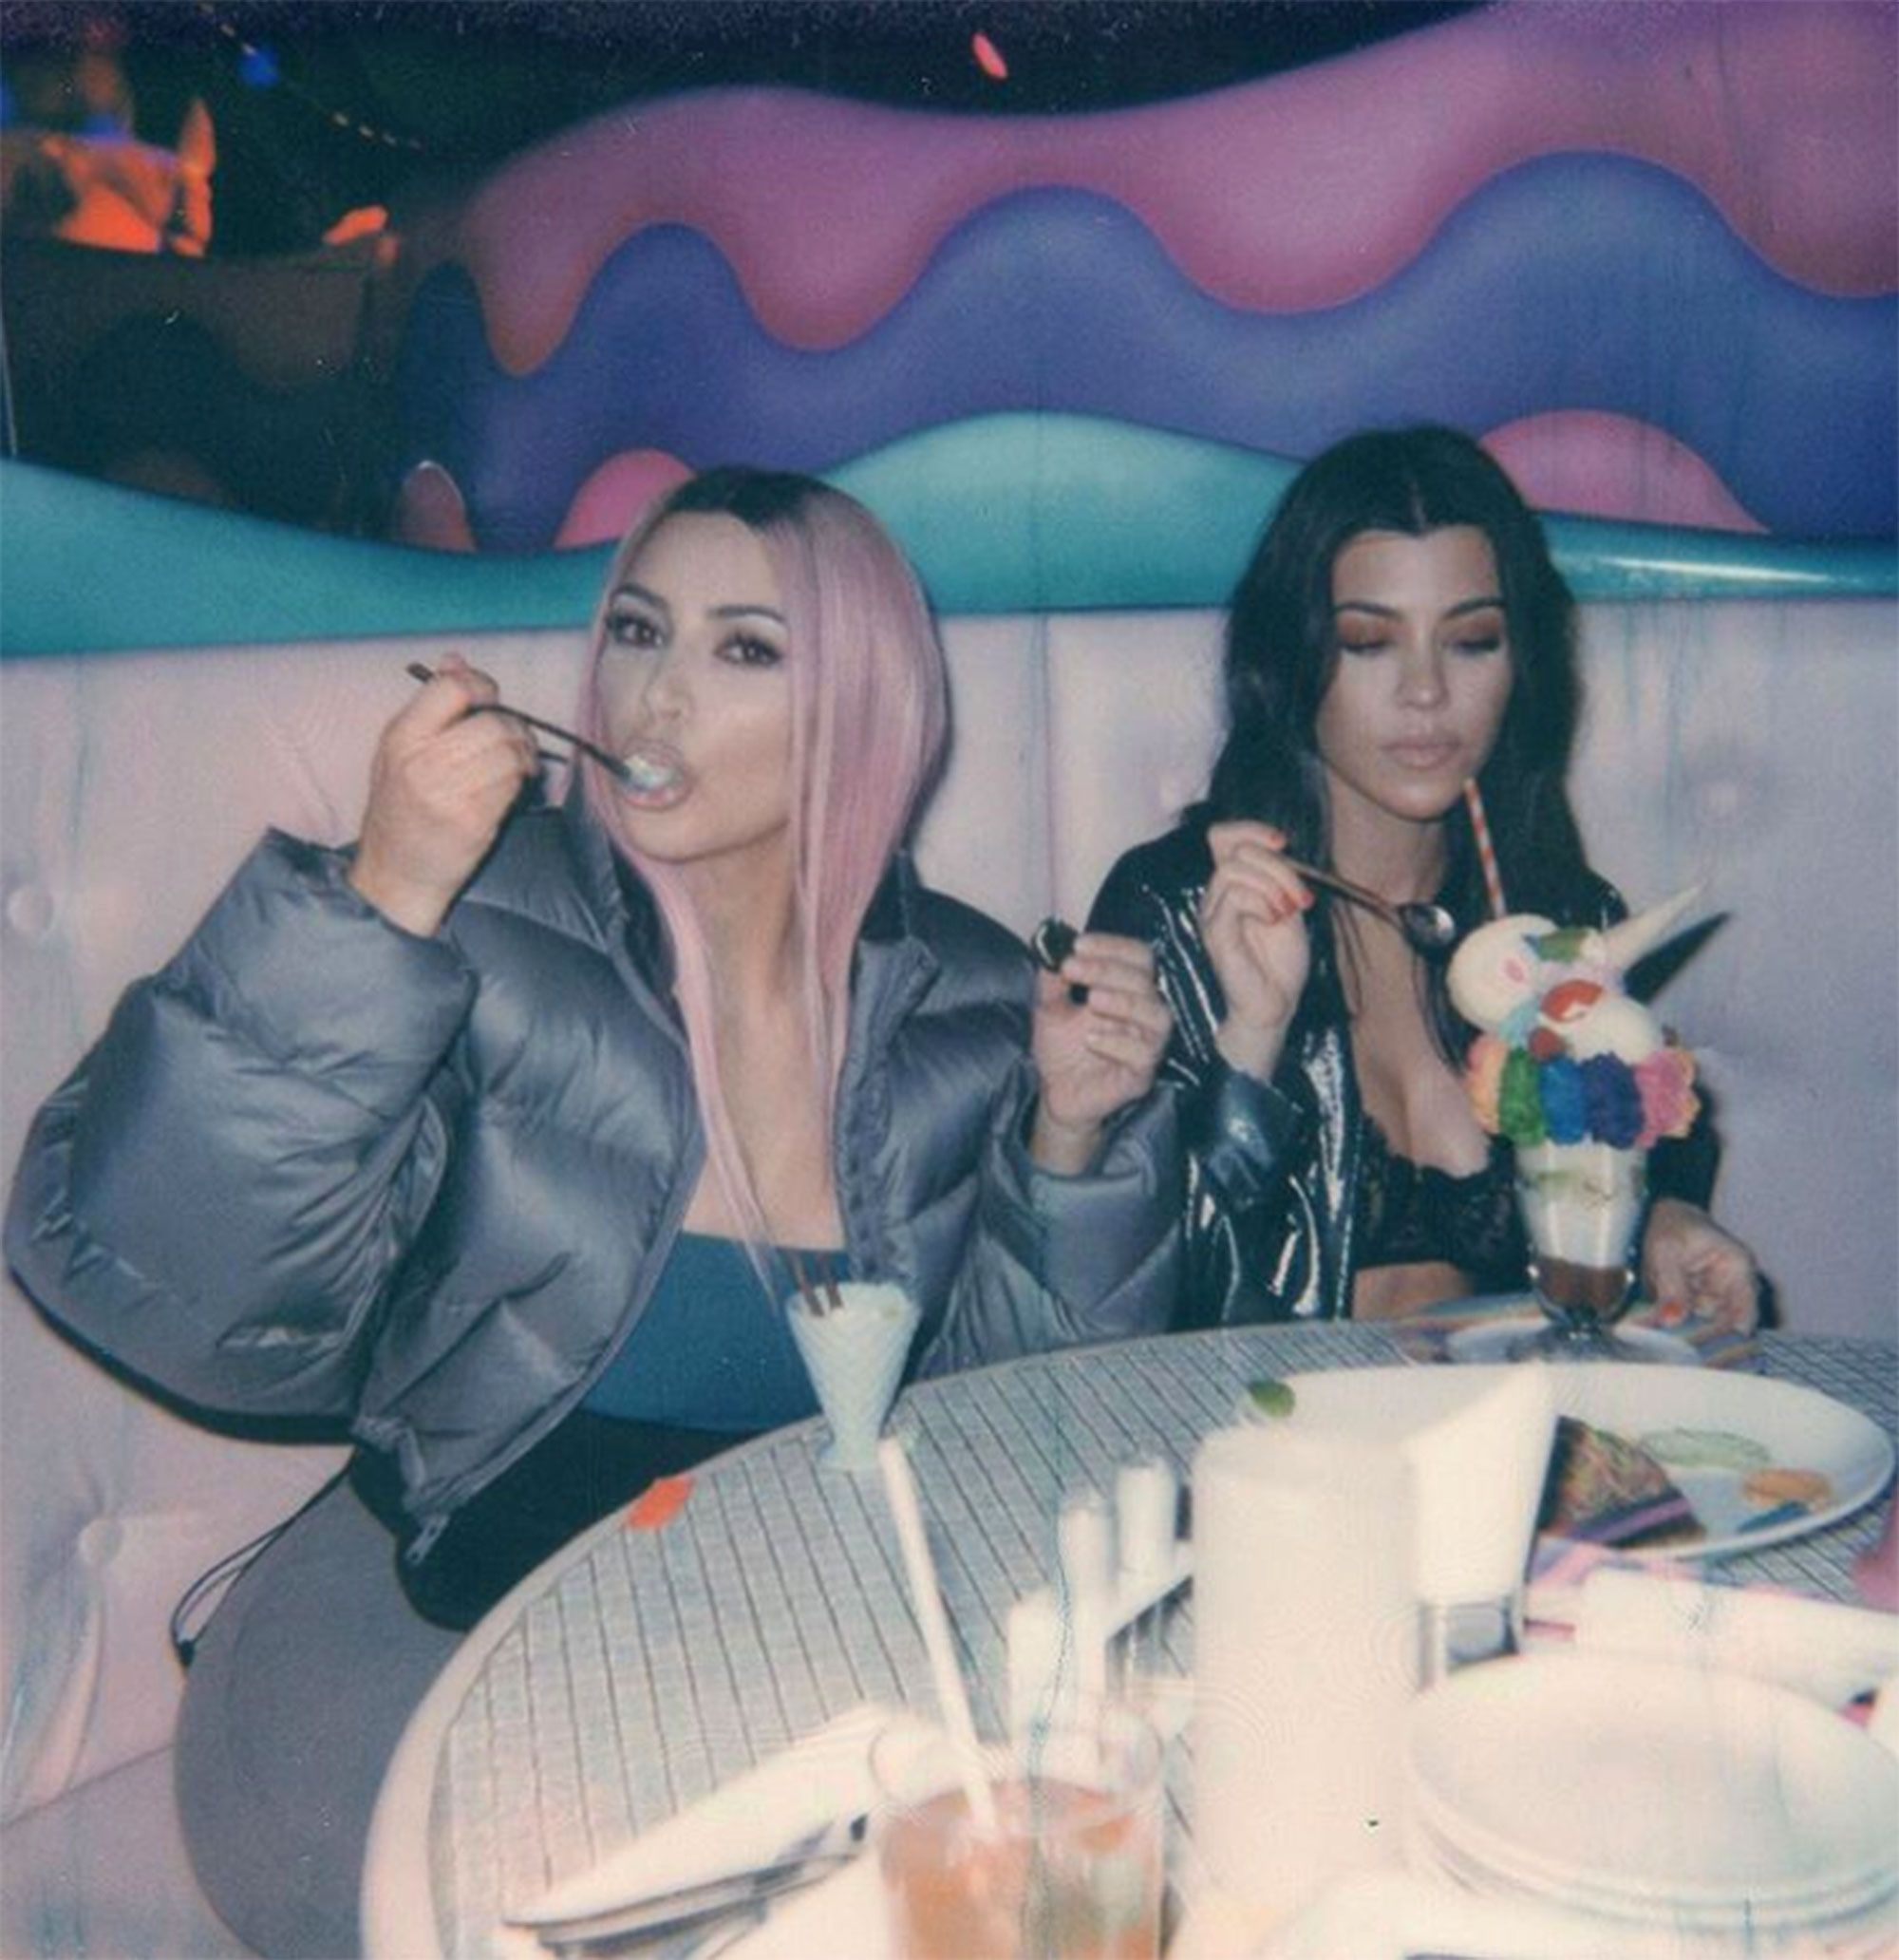 Kim Kardashian 'Disgusted' with Kourtney and Khloé's Japan Outfits: 'It's Actually Embarrassing'